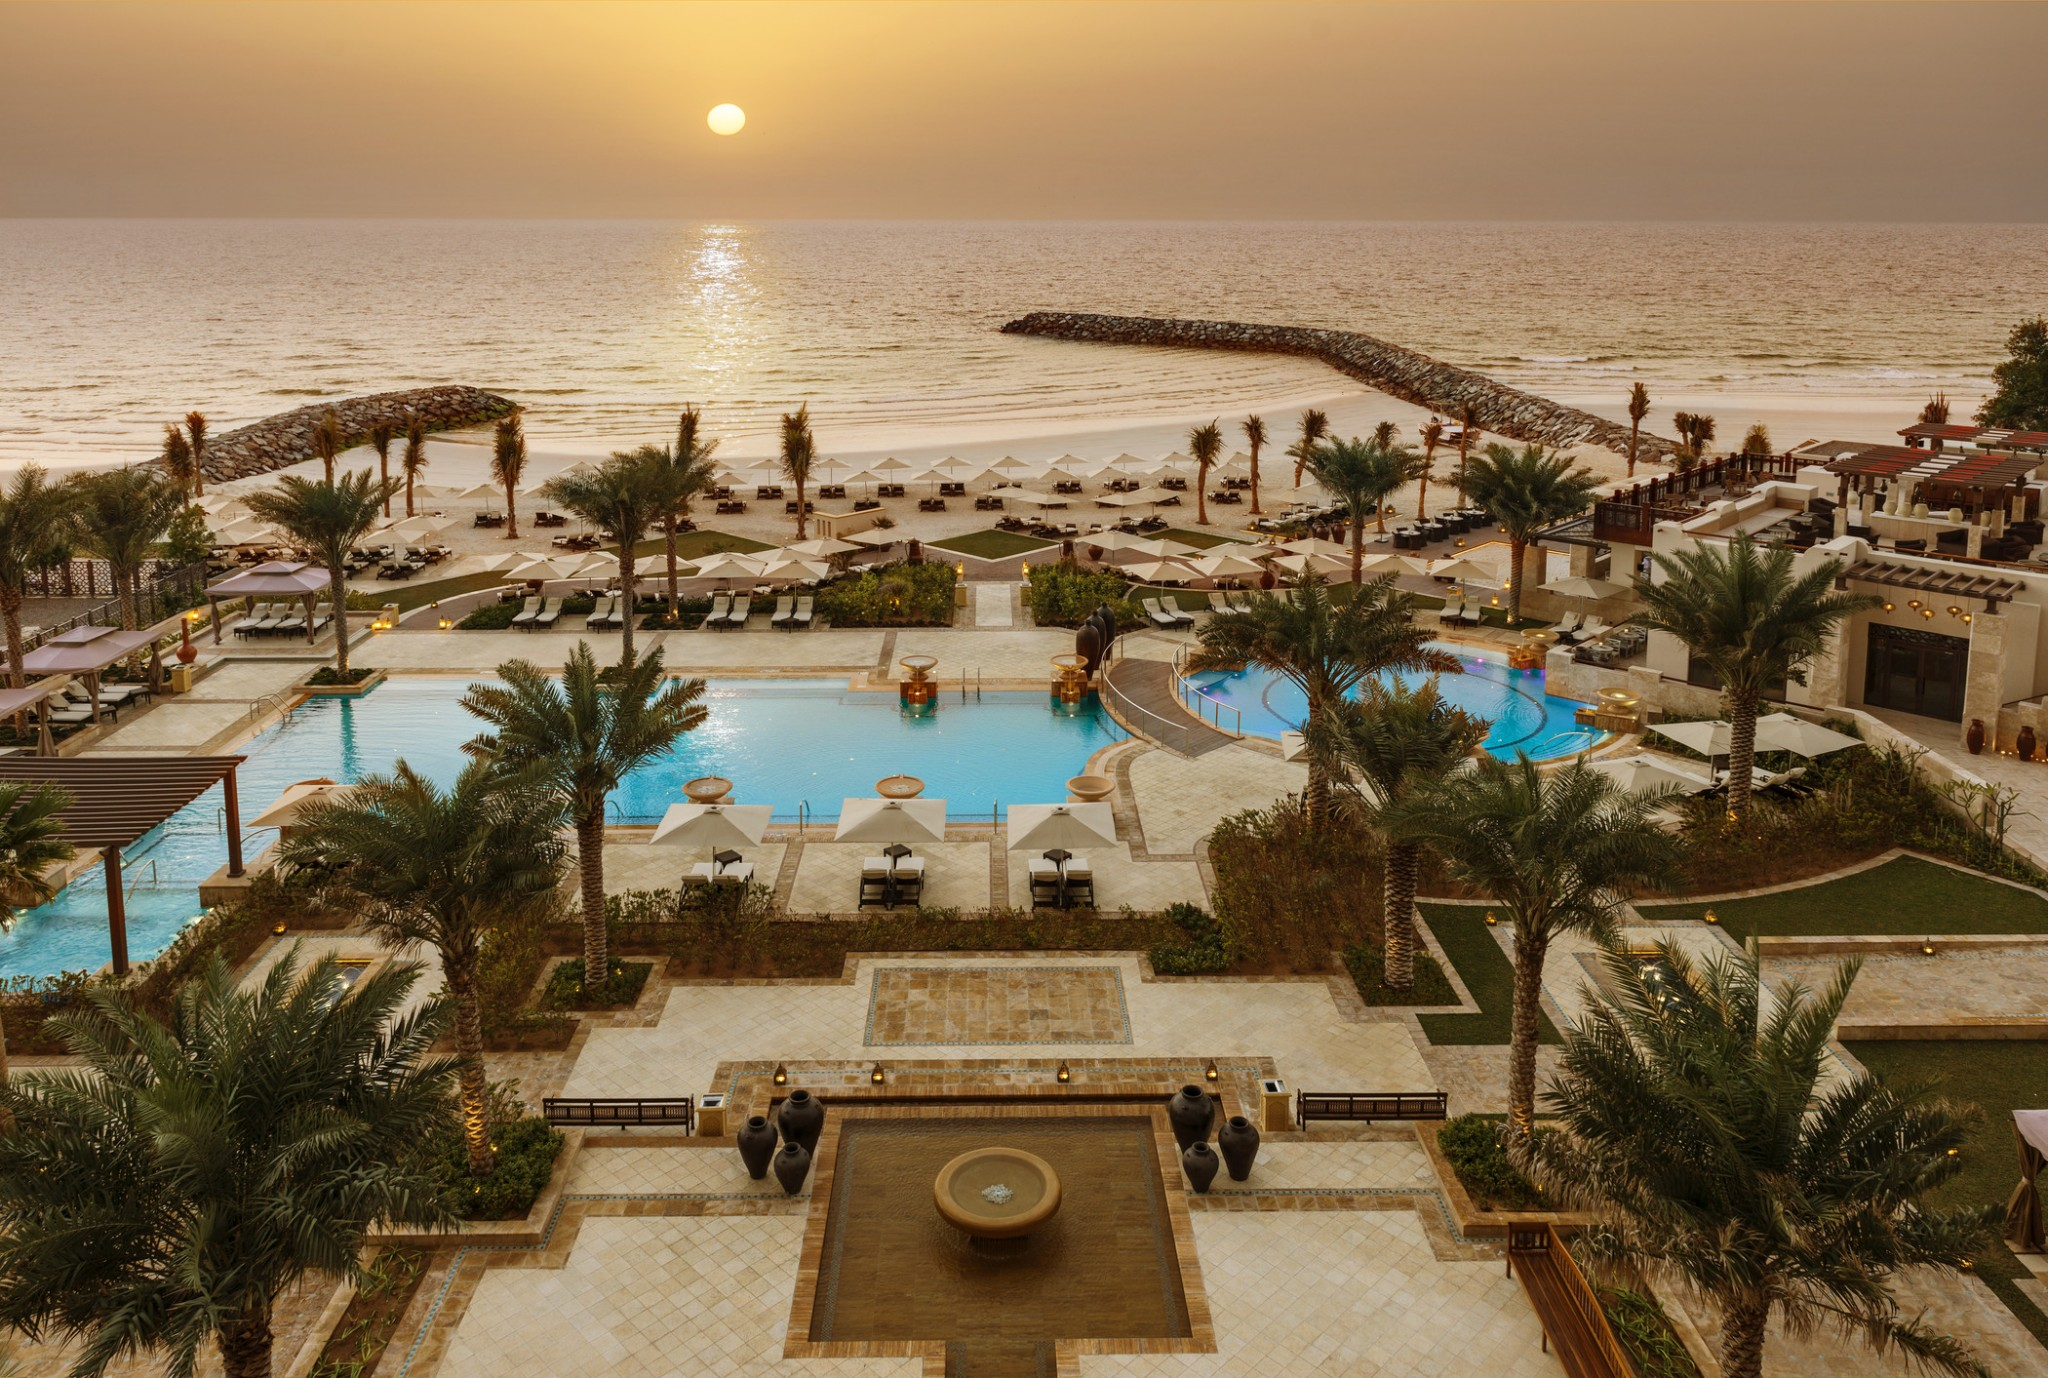 Ajman-view from the Room - Sunset